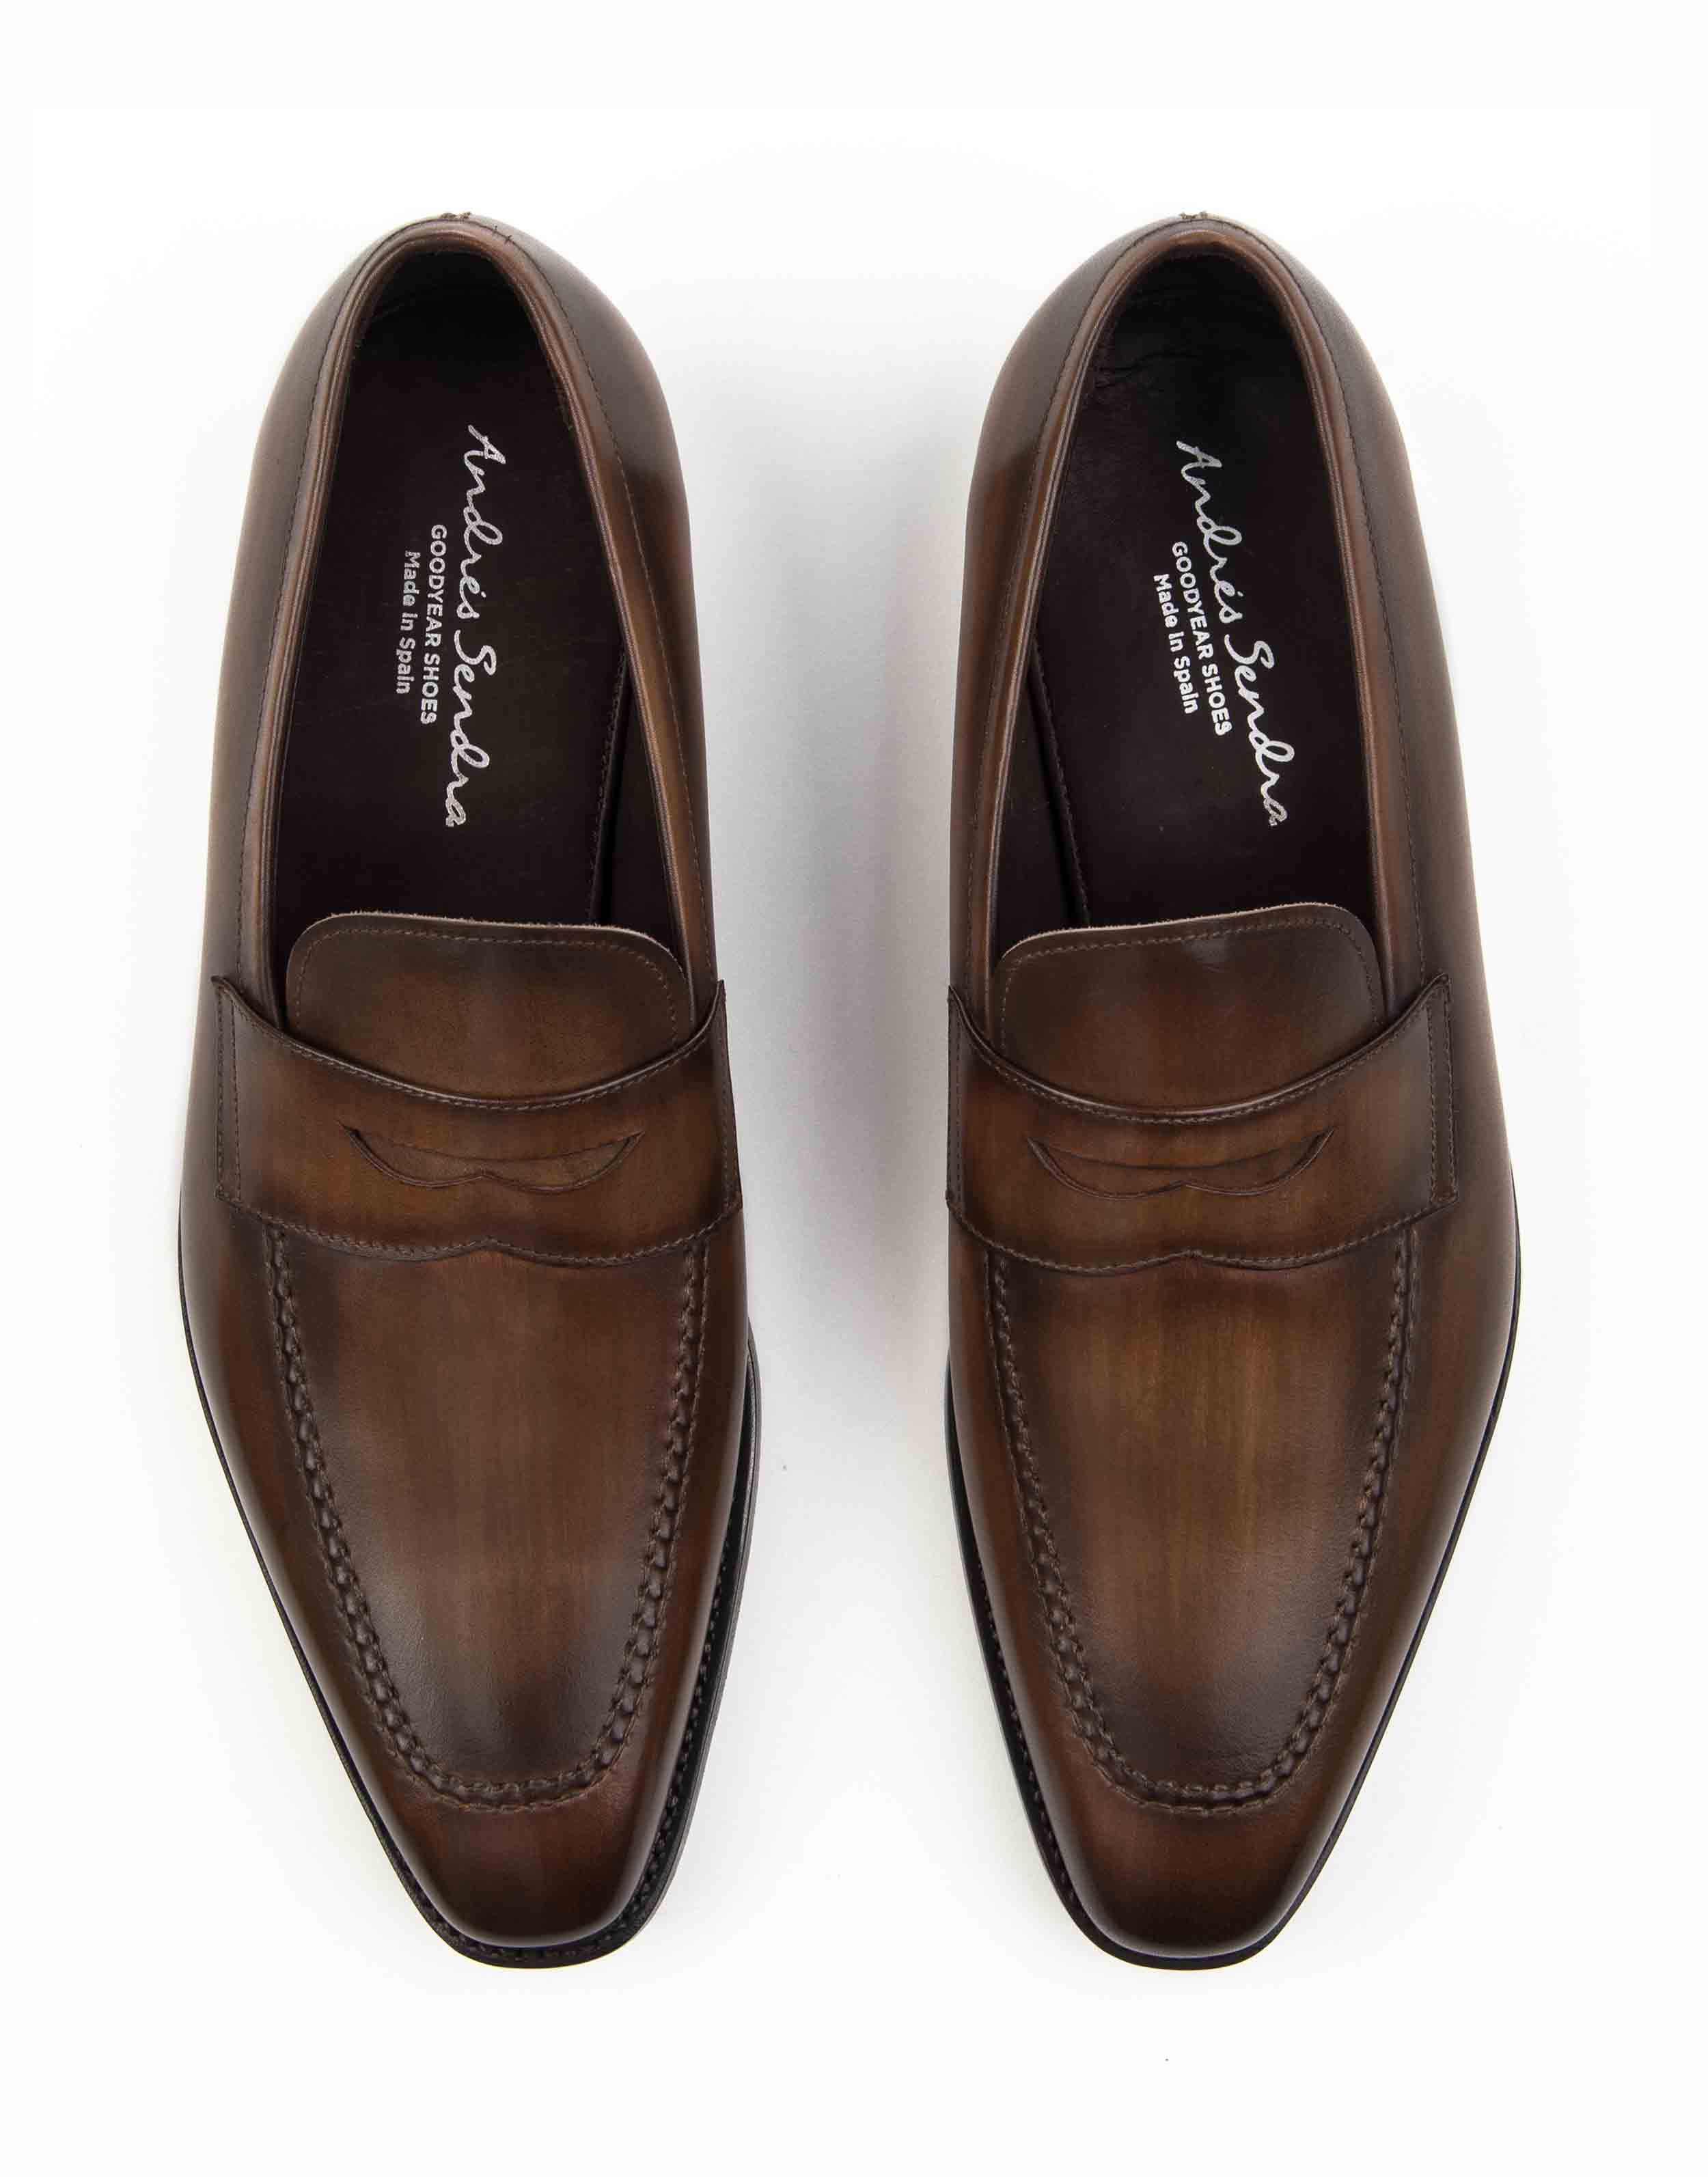 BROWN PENNY LOAFERS4